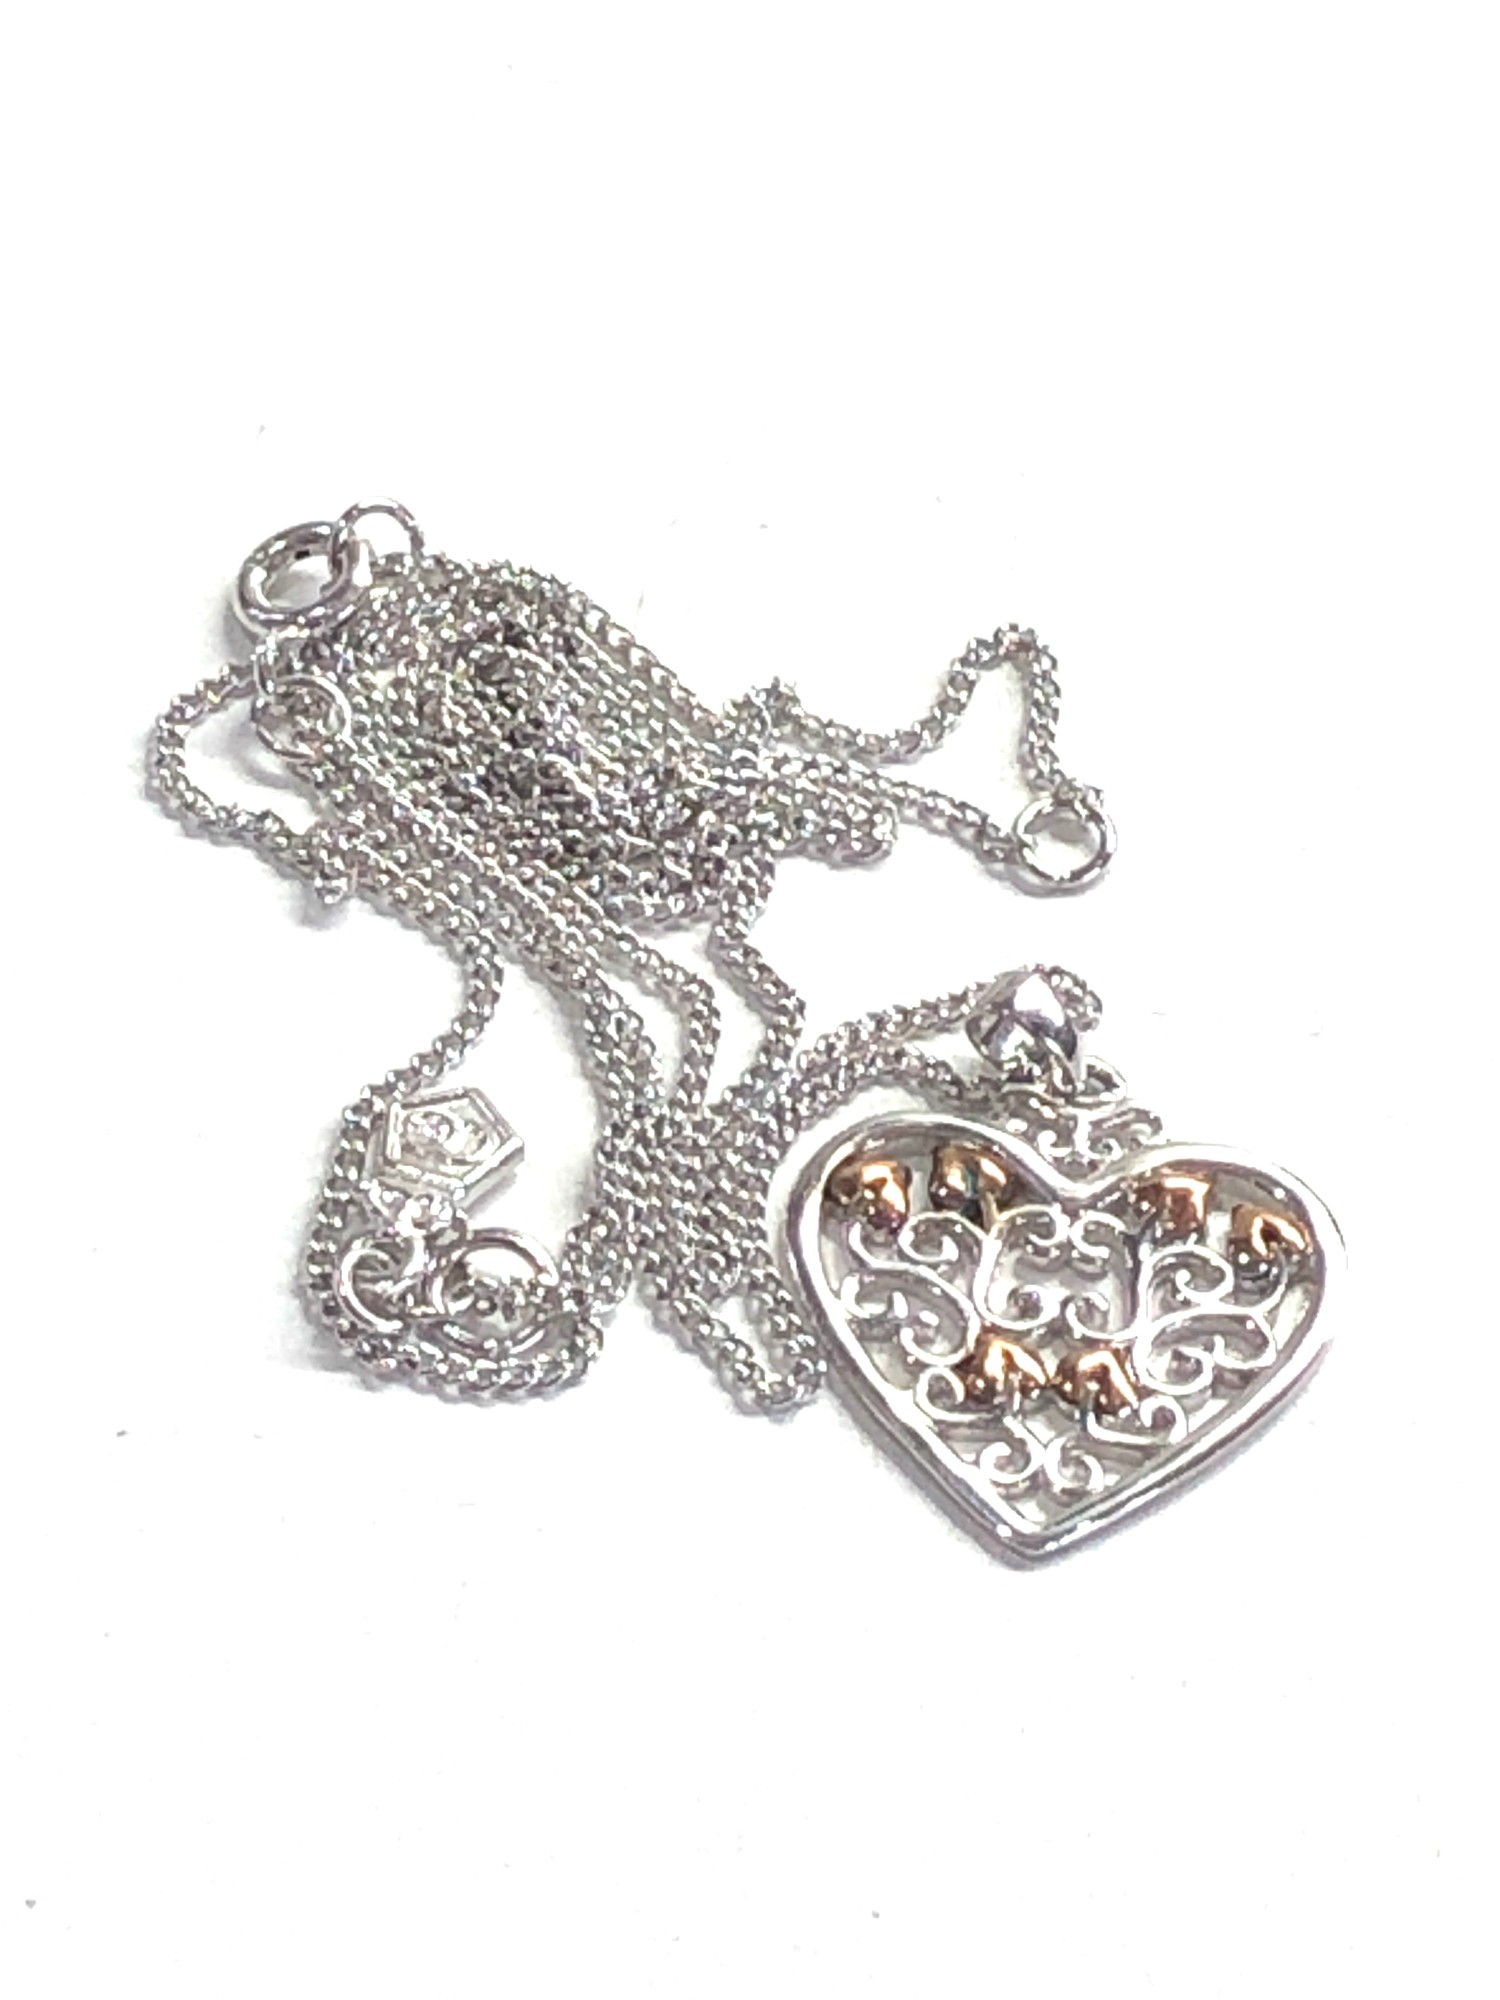 Clogau silver heart pendant and chain - Image 3 of 4